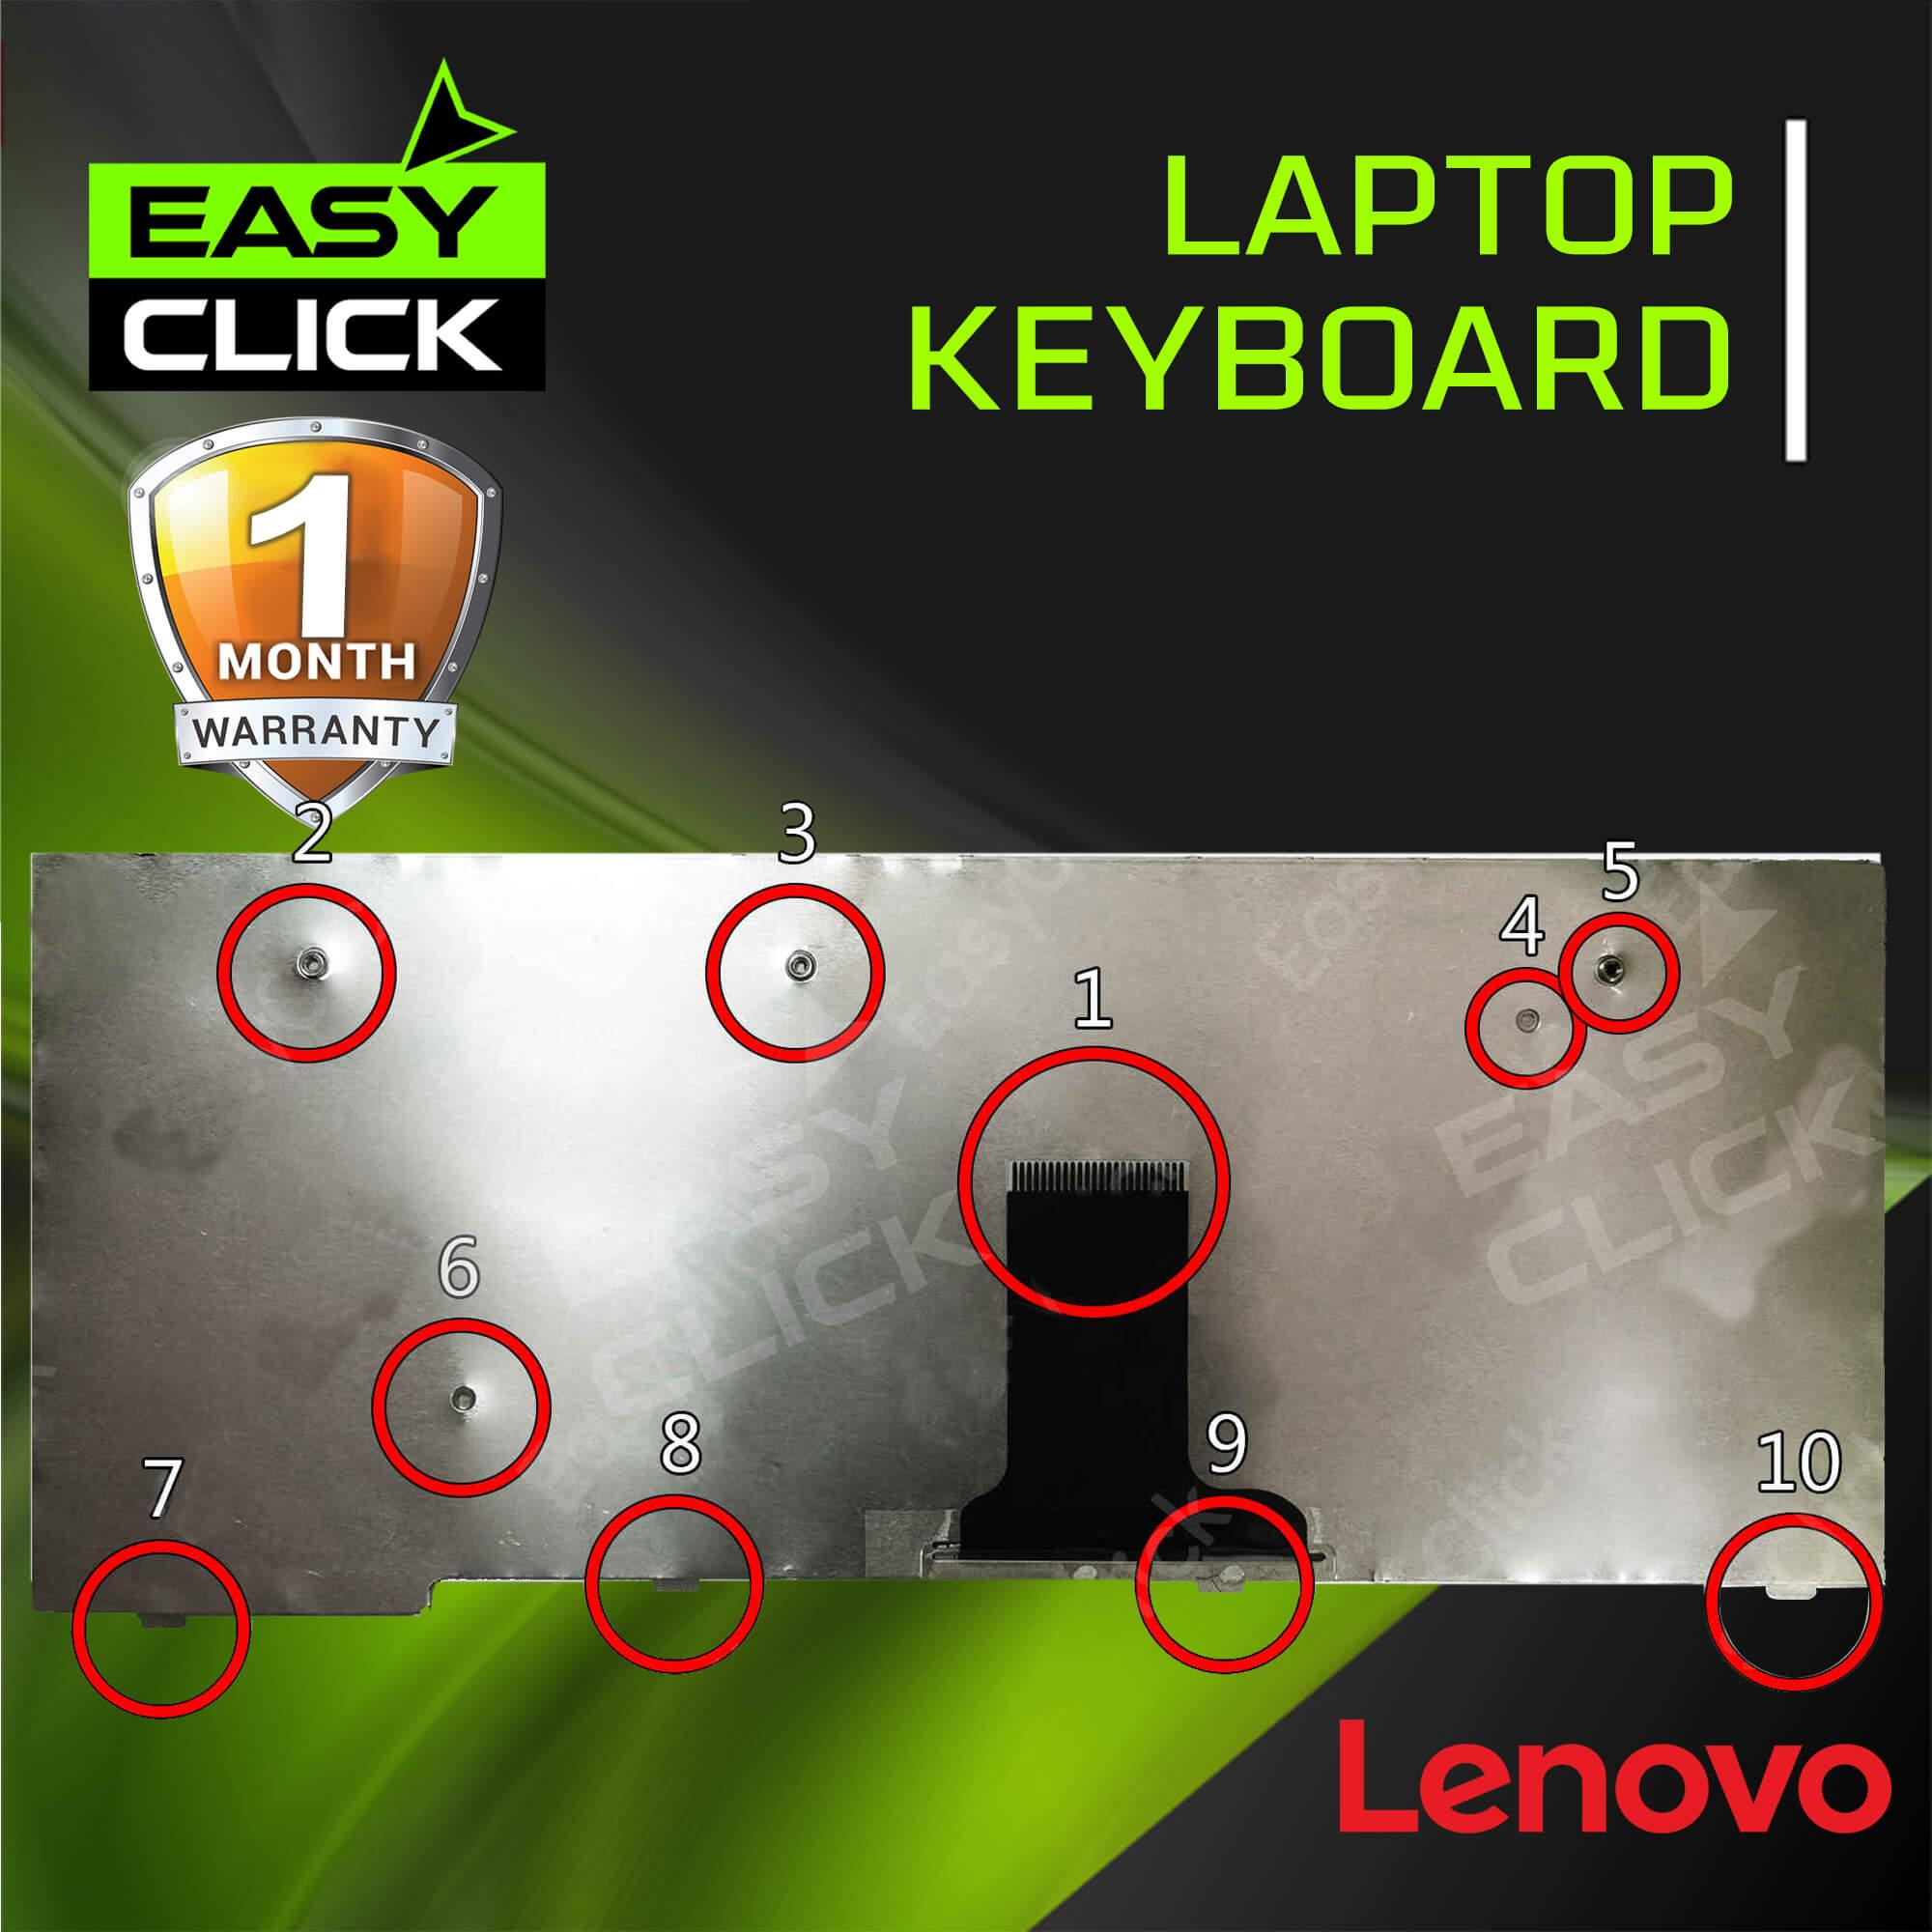 Laptop keyboard For Lenovo IdeaPad S10-3 S10-3s S100 S110